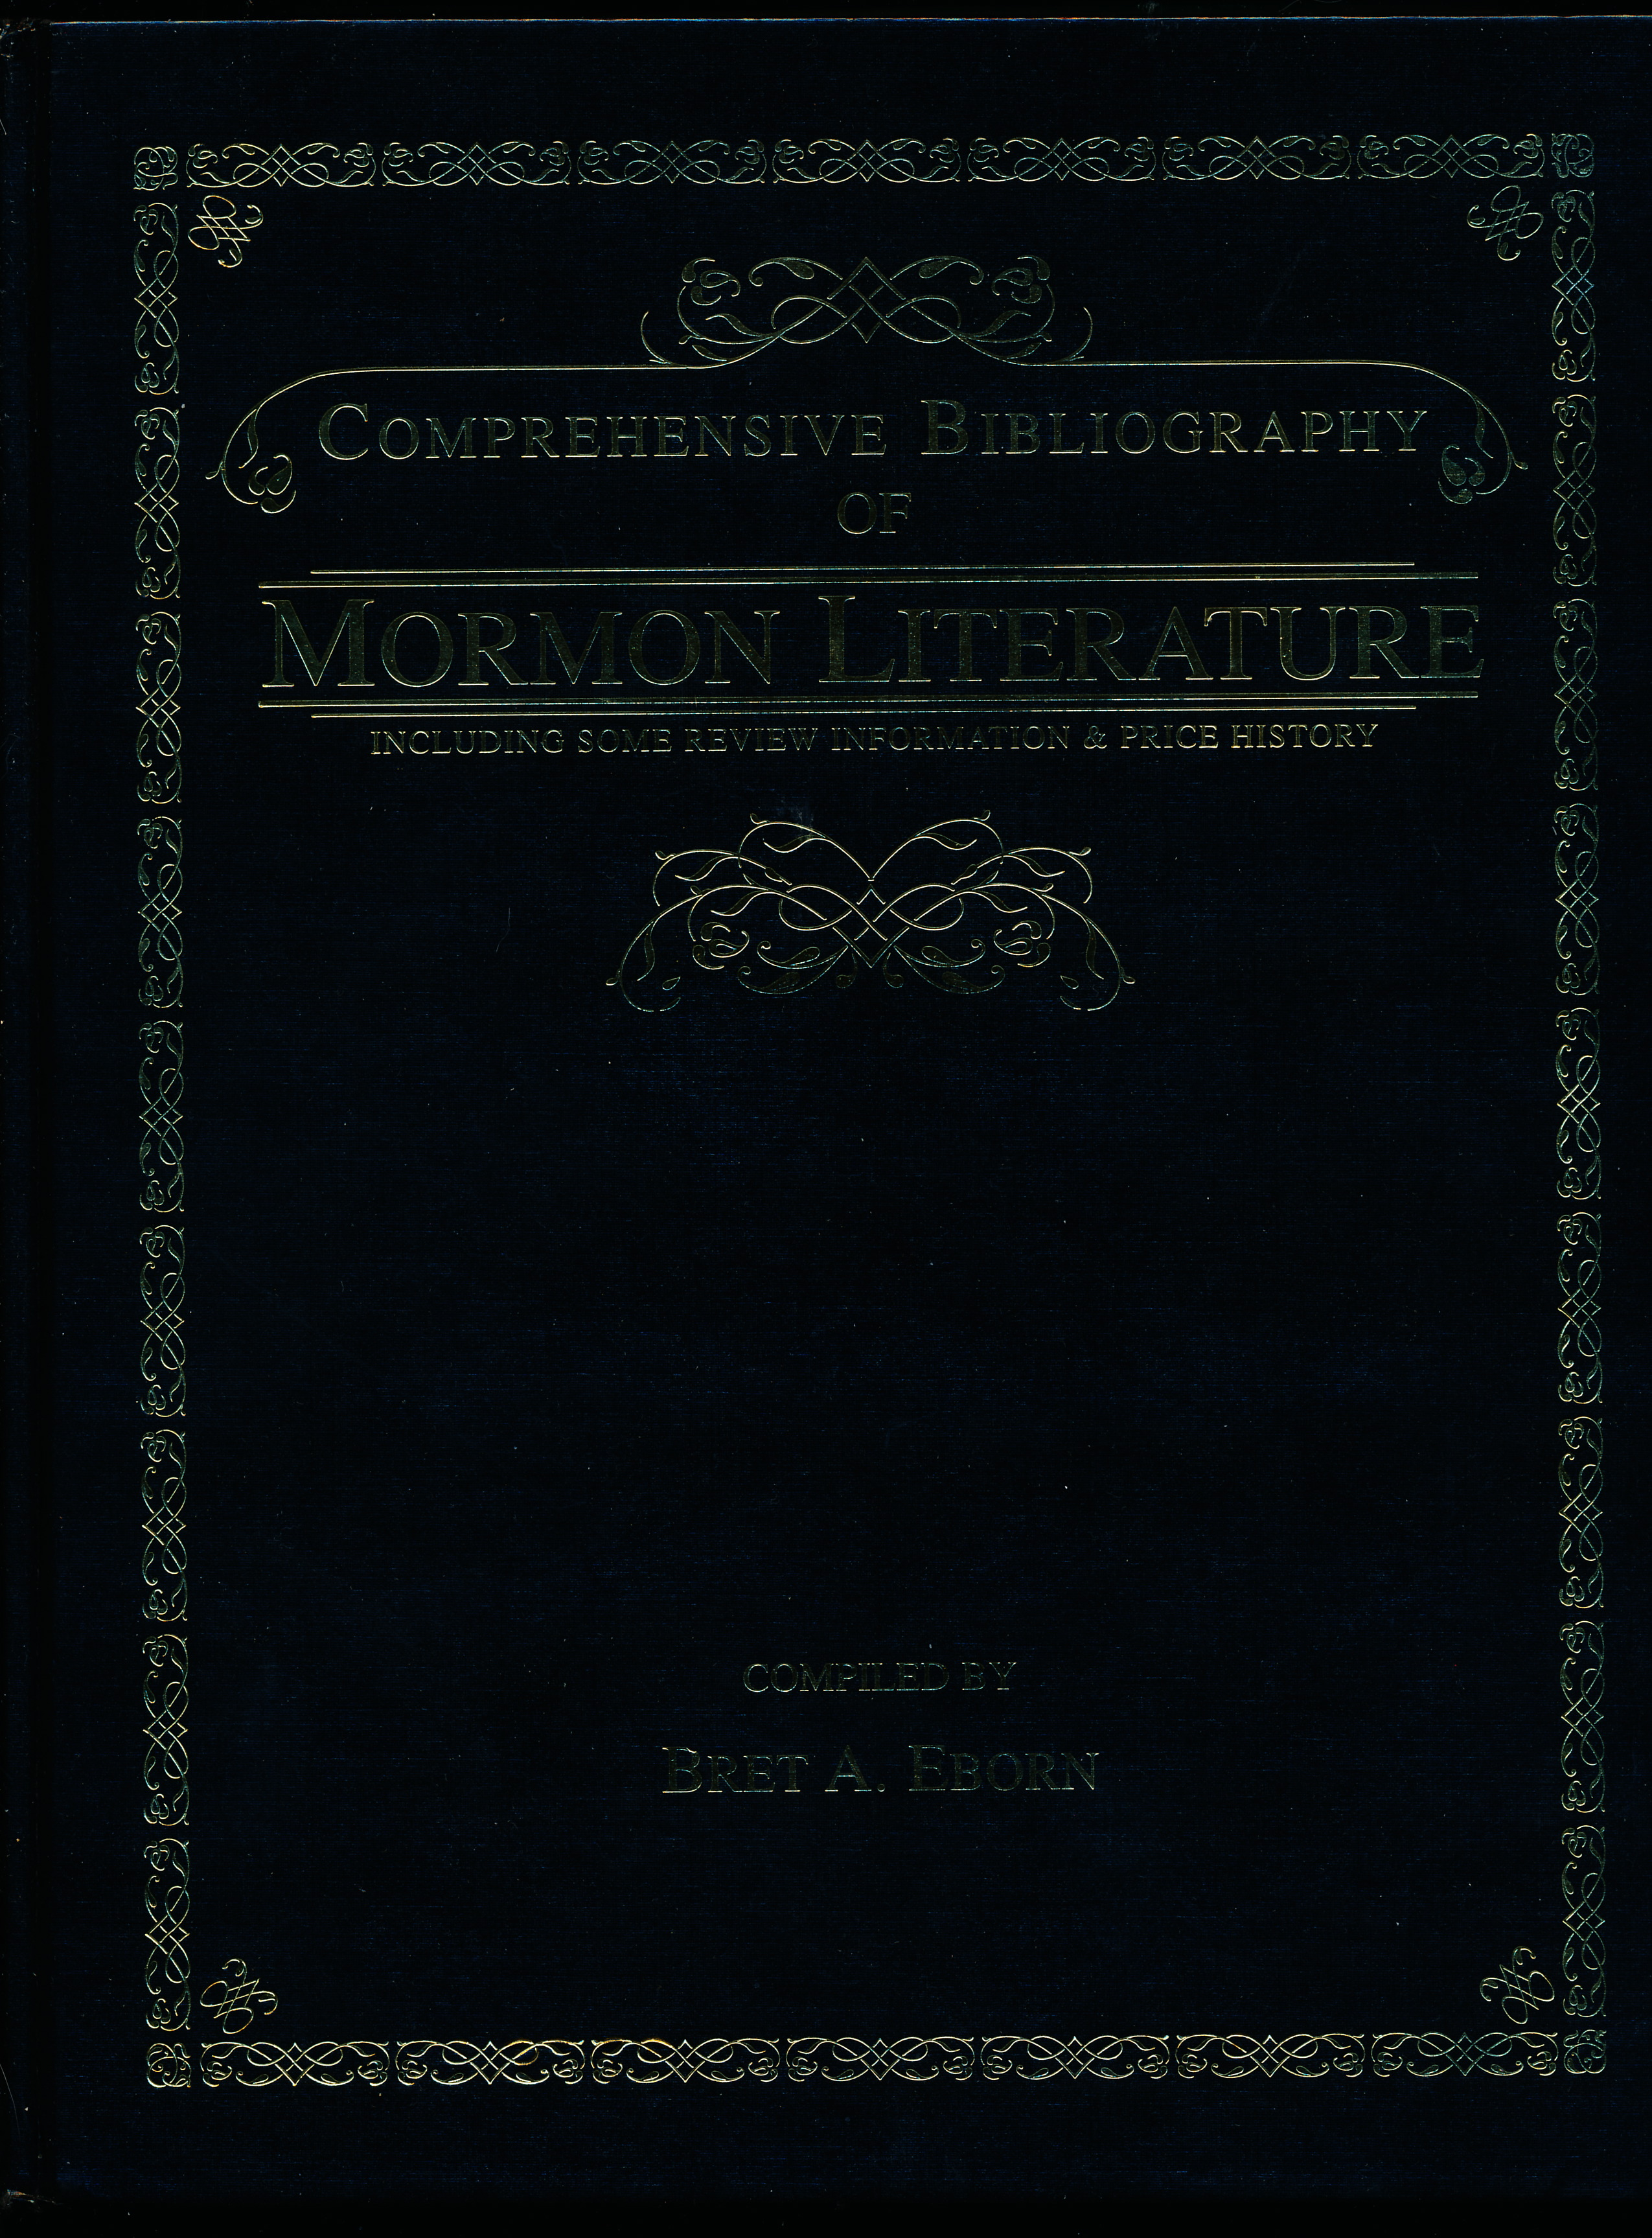 Image for COMPREHENSIVE BIBLIOGRAPHY OF MORMON LITERATURE INCLUDING SOME PRICE INFORMATION & PRICE HISTORY.